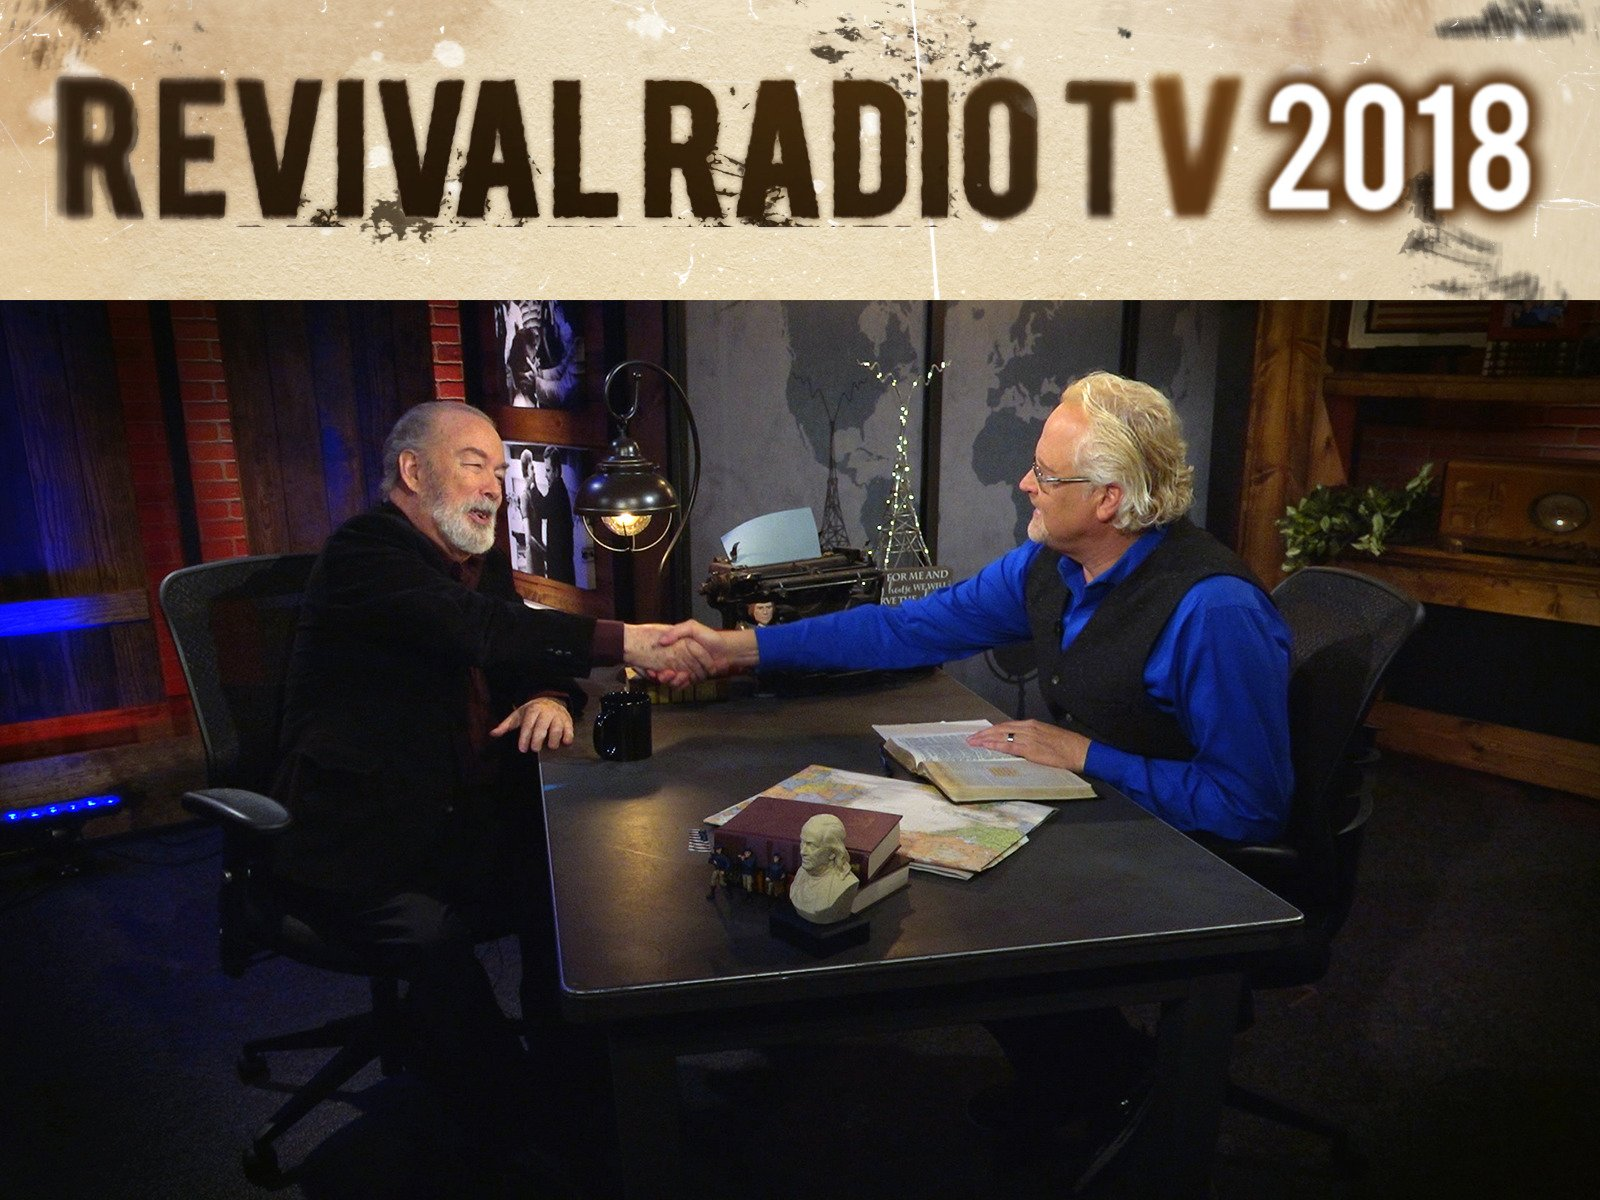 Revival Radio TV 2018